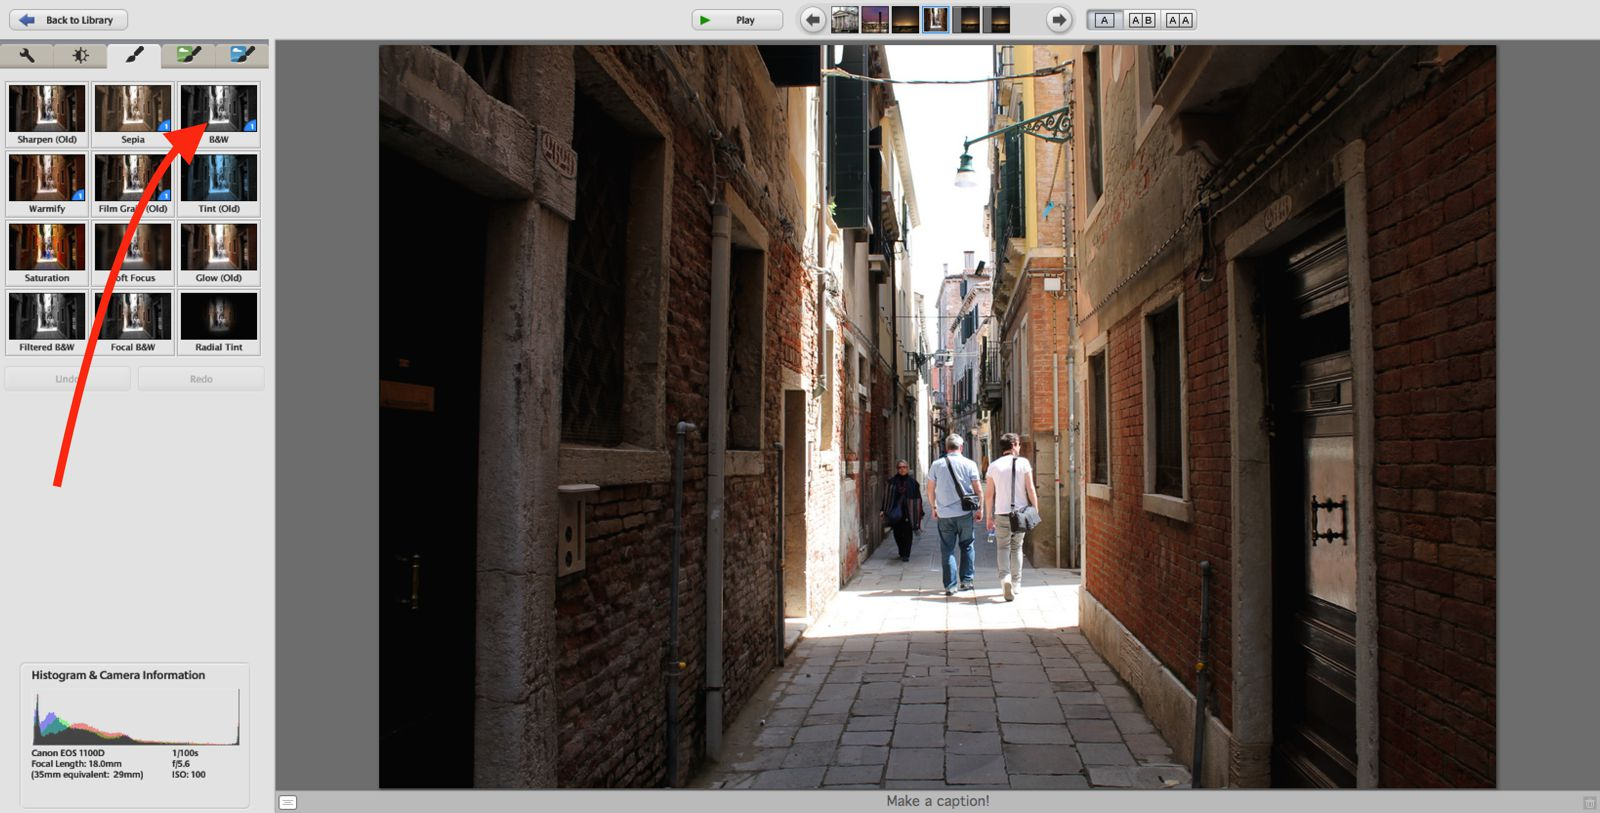 These Two Simple Steps Are The Easiest Way To Make Your Photos Pop! Picasa Photo Editing Guide (3)